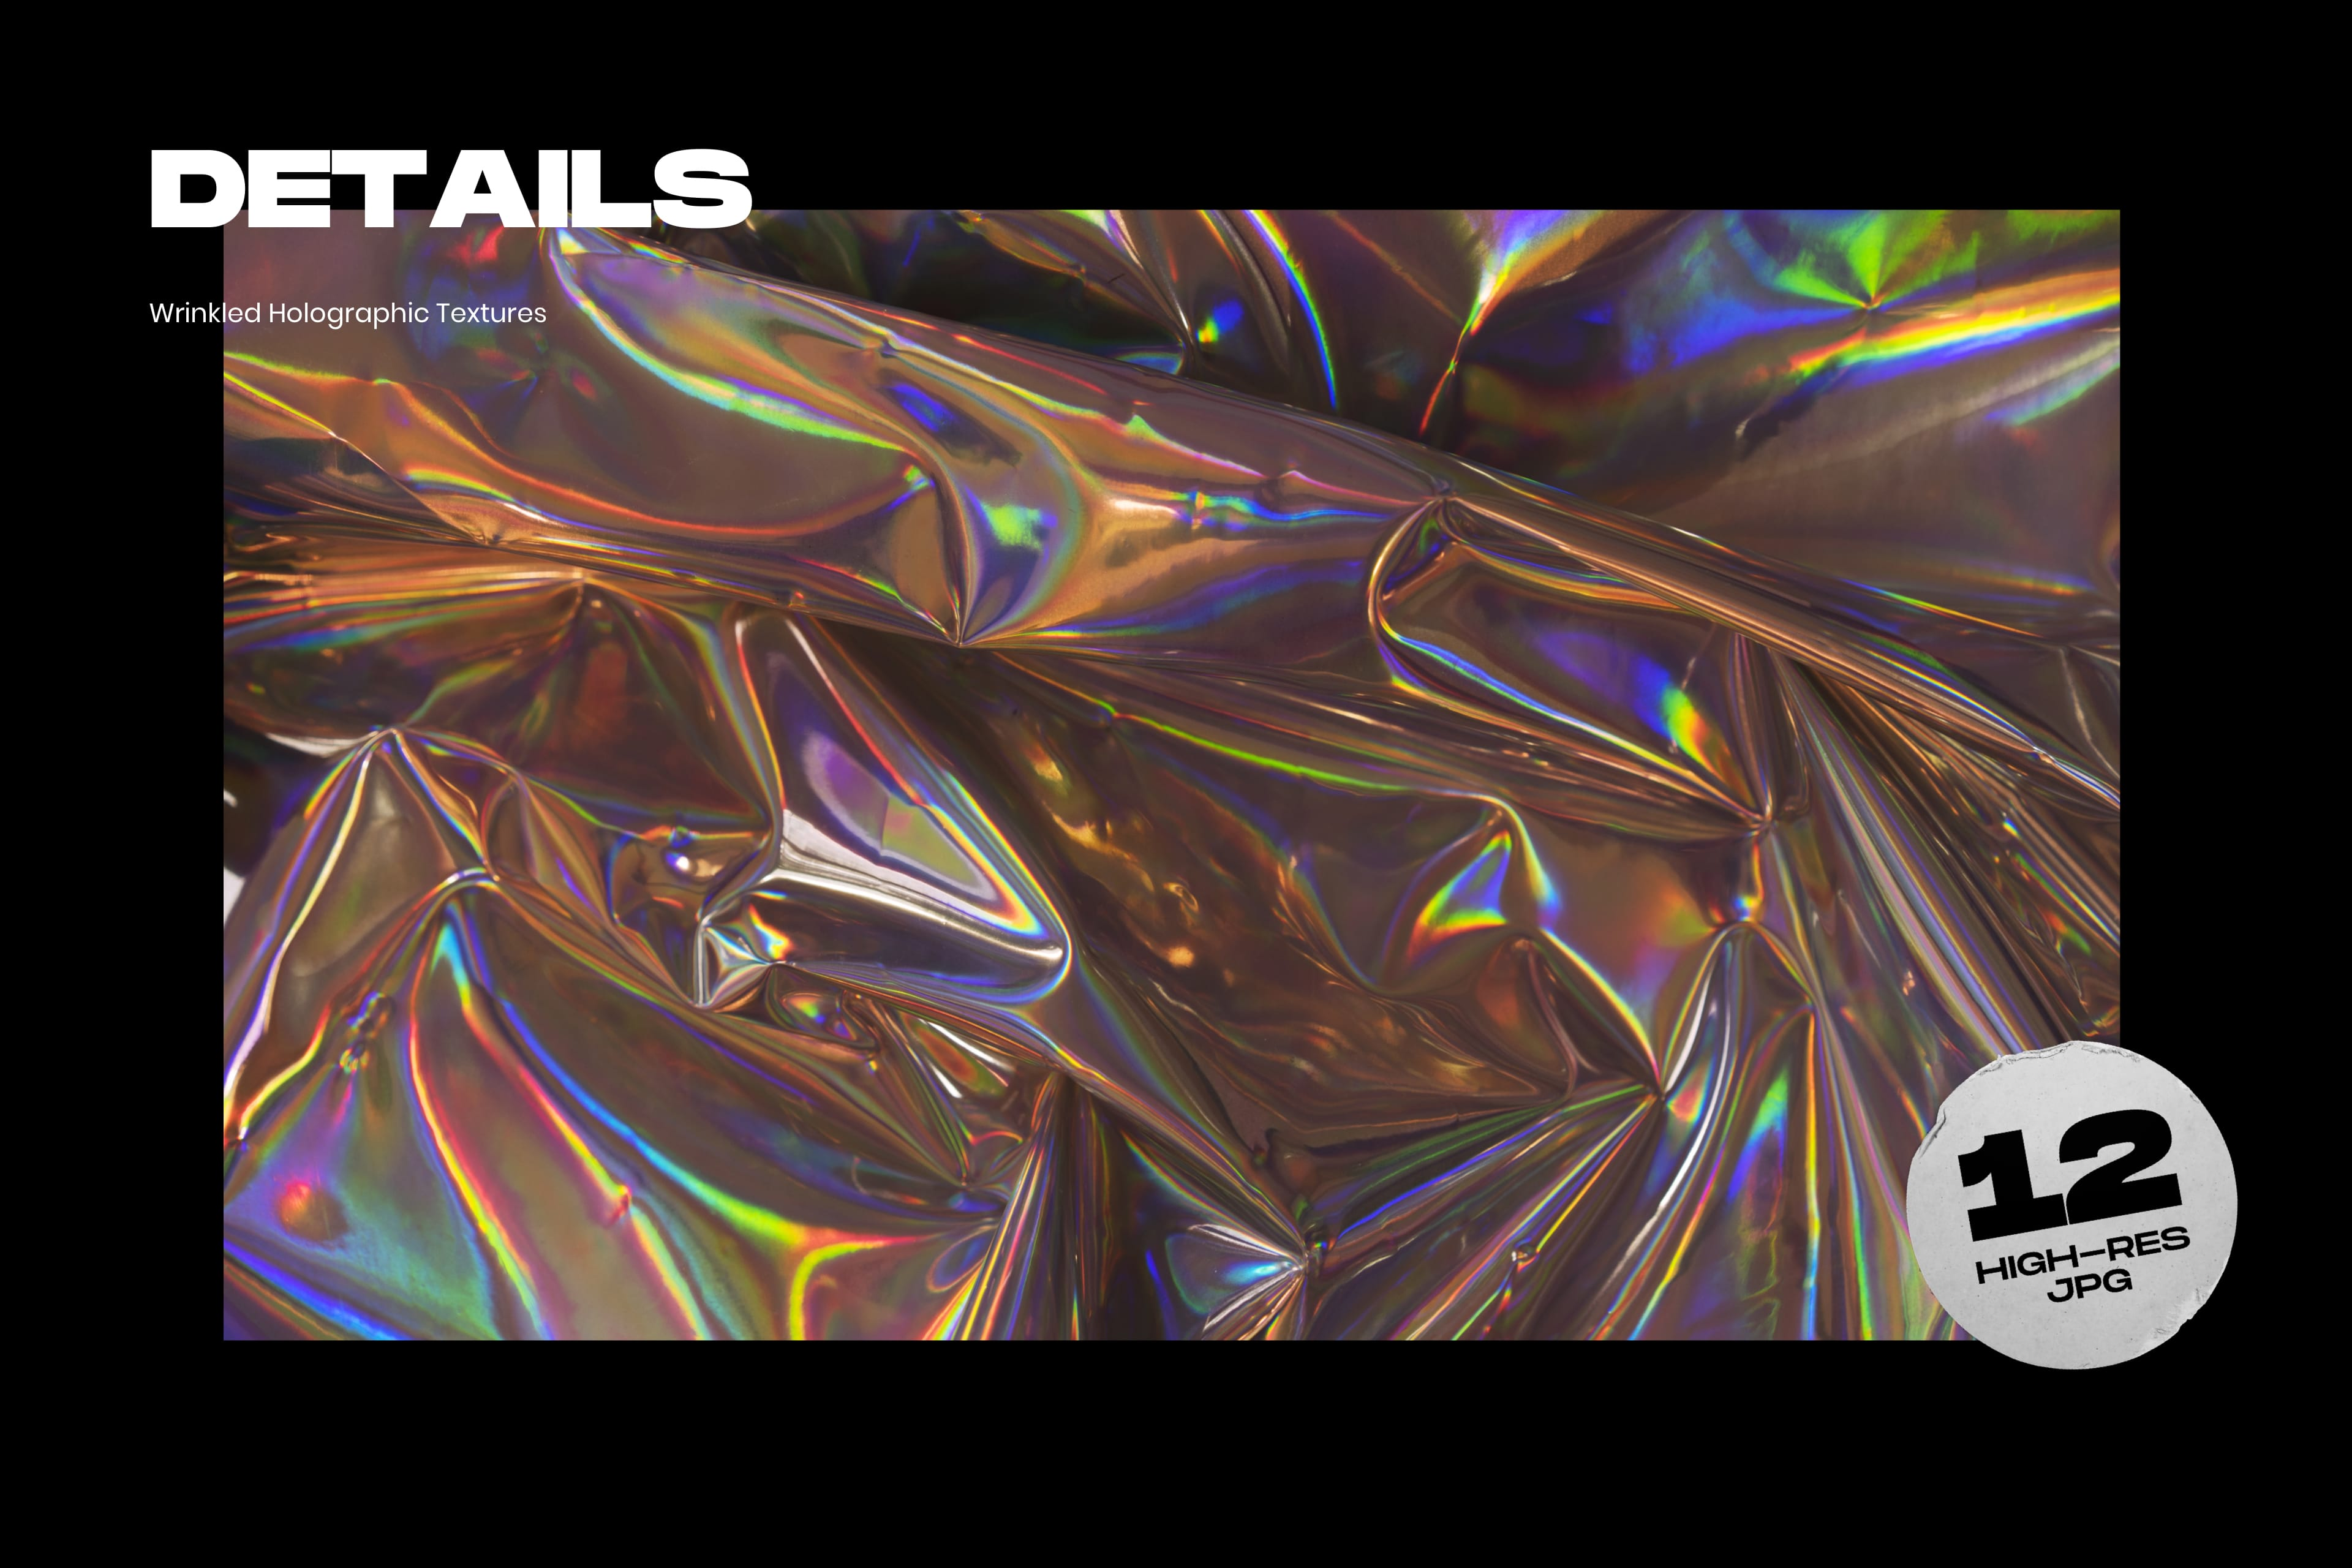 Wrinkled Holographic Textures - Details2